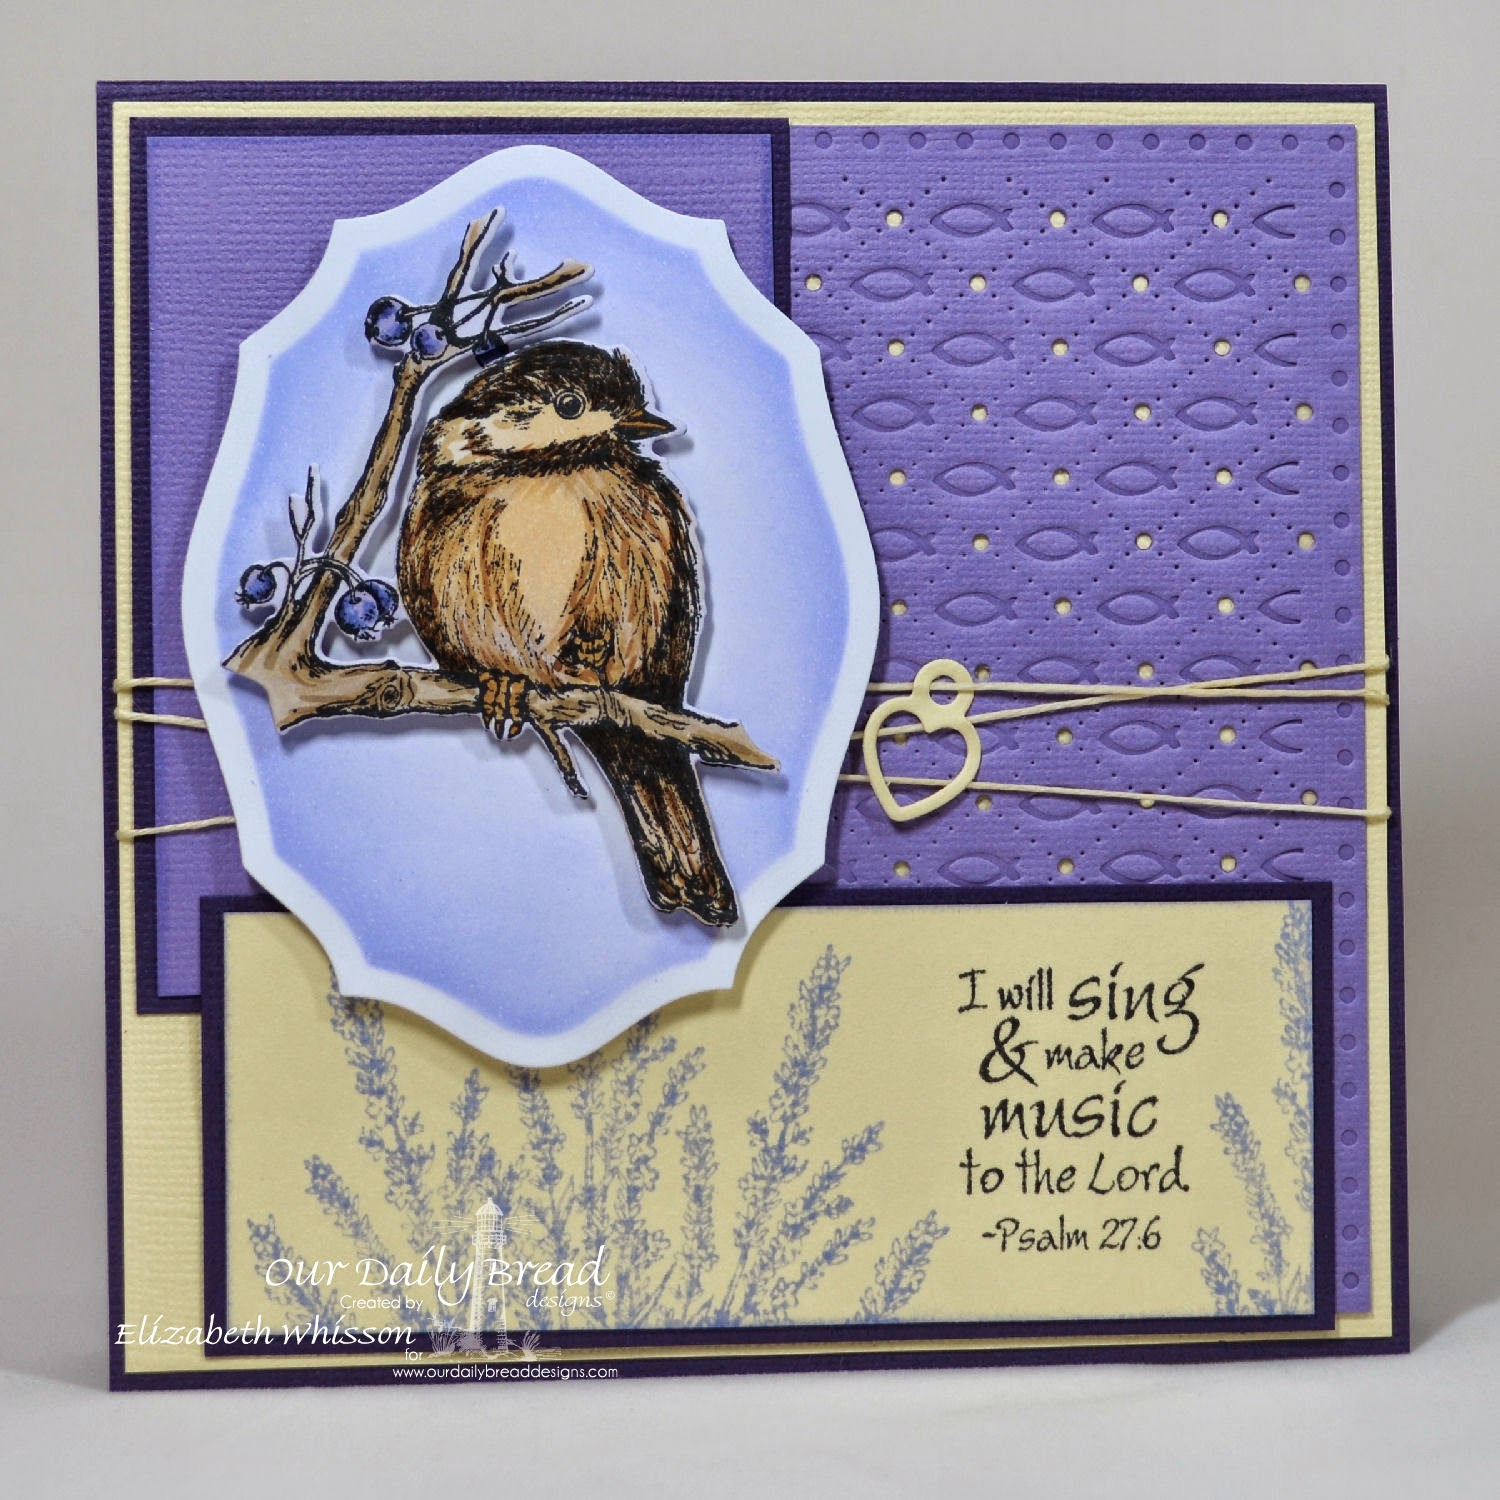 Our Daily Bread Designs, You Will Find Refuge, Lavender, Just a Note, Faithful Fish Pattern Die and Debossing Plate, Mini Tag Dies, Chickadee Die, Elegant Oval Dies, Designed by Elizabeth Whisson